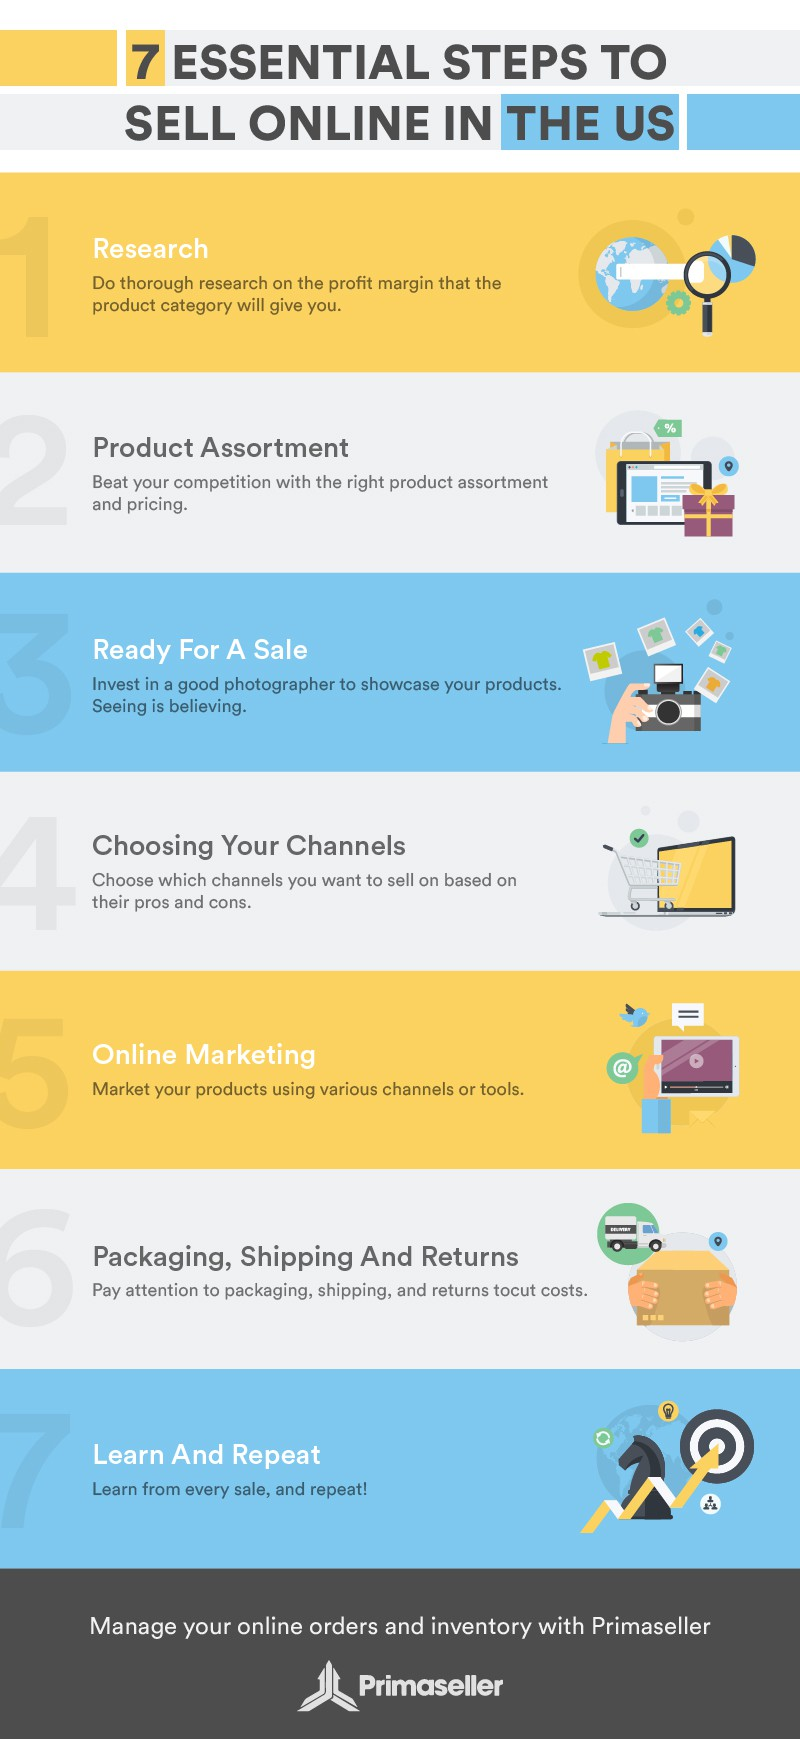 7 steps to sell online in the US